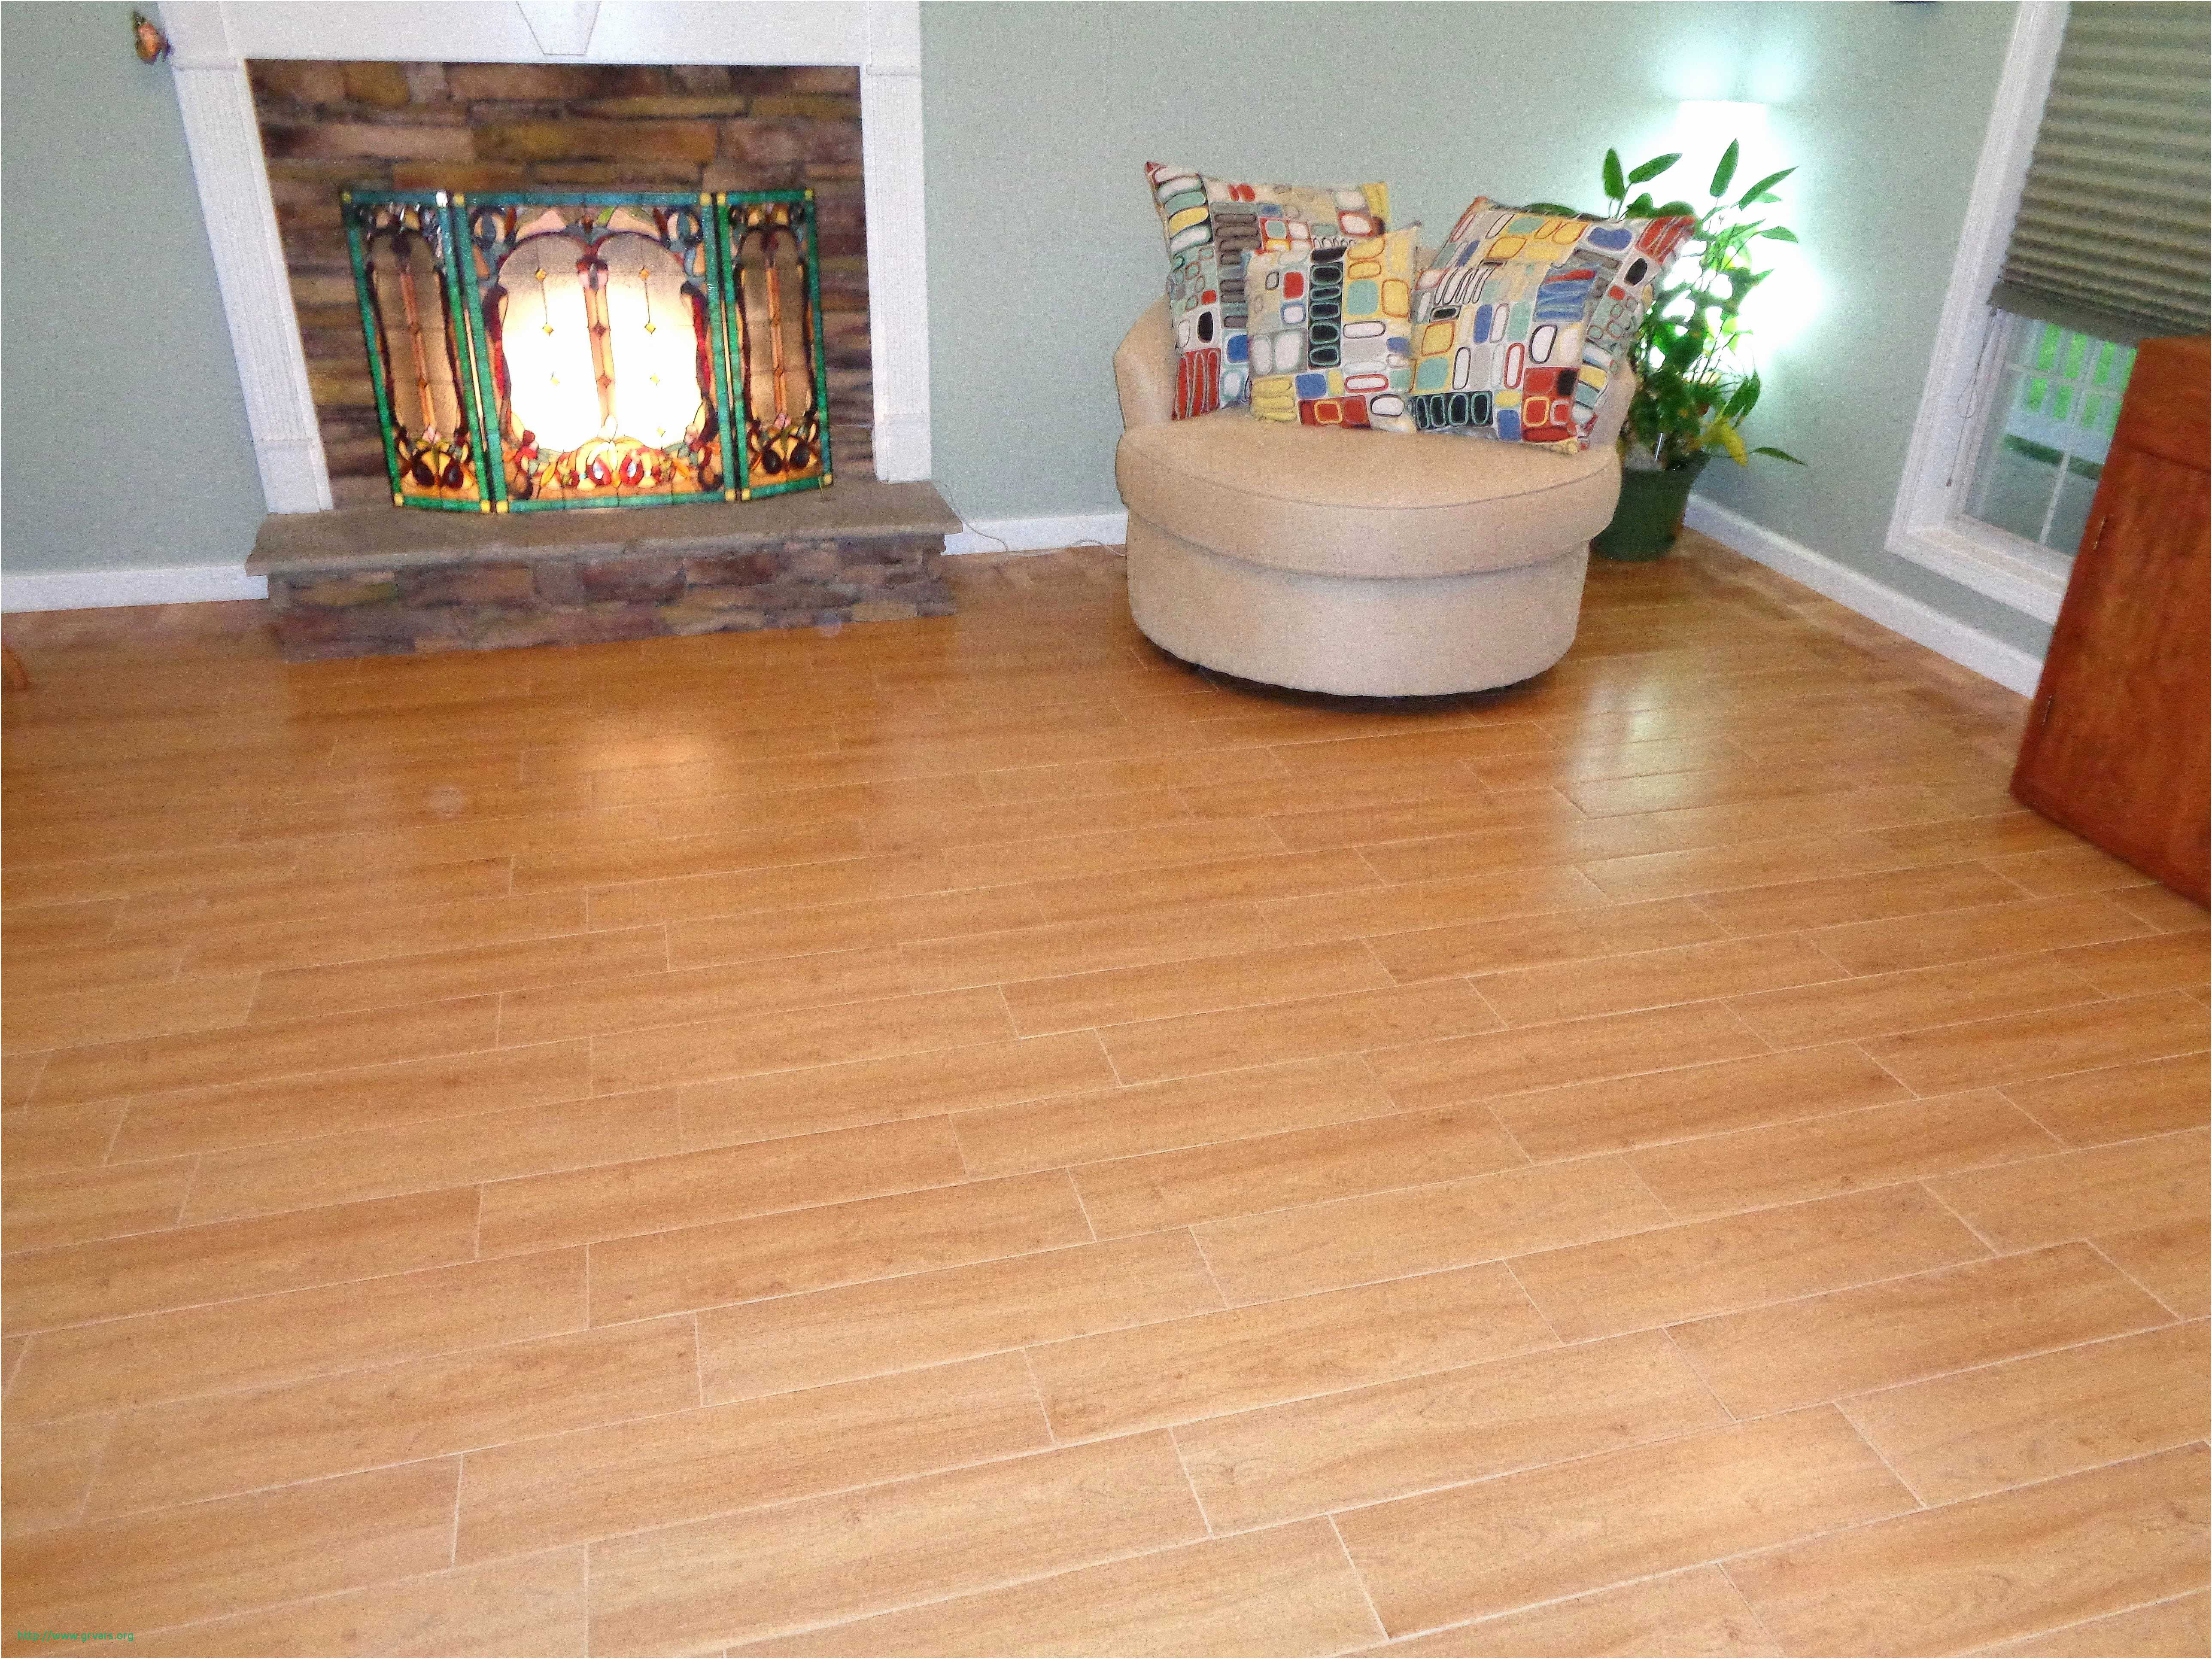 Hardwood Flooring Bundle Size Of 24 Inspirant How Much are Wood Floors Ideas Blog Pertaining to How Much are Wood Floors Beau Laminated Wooden Flooring Prices Guide to solid Hardwood Floors